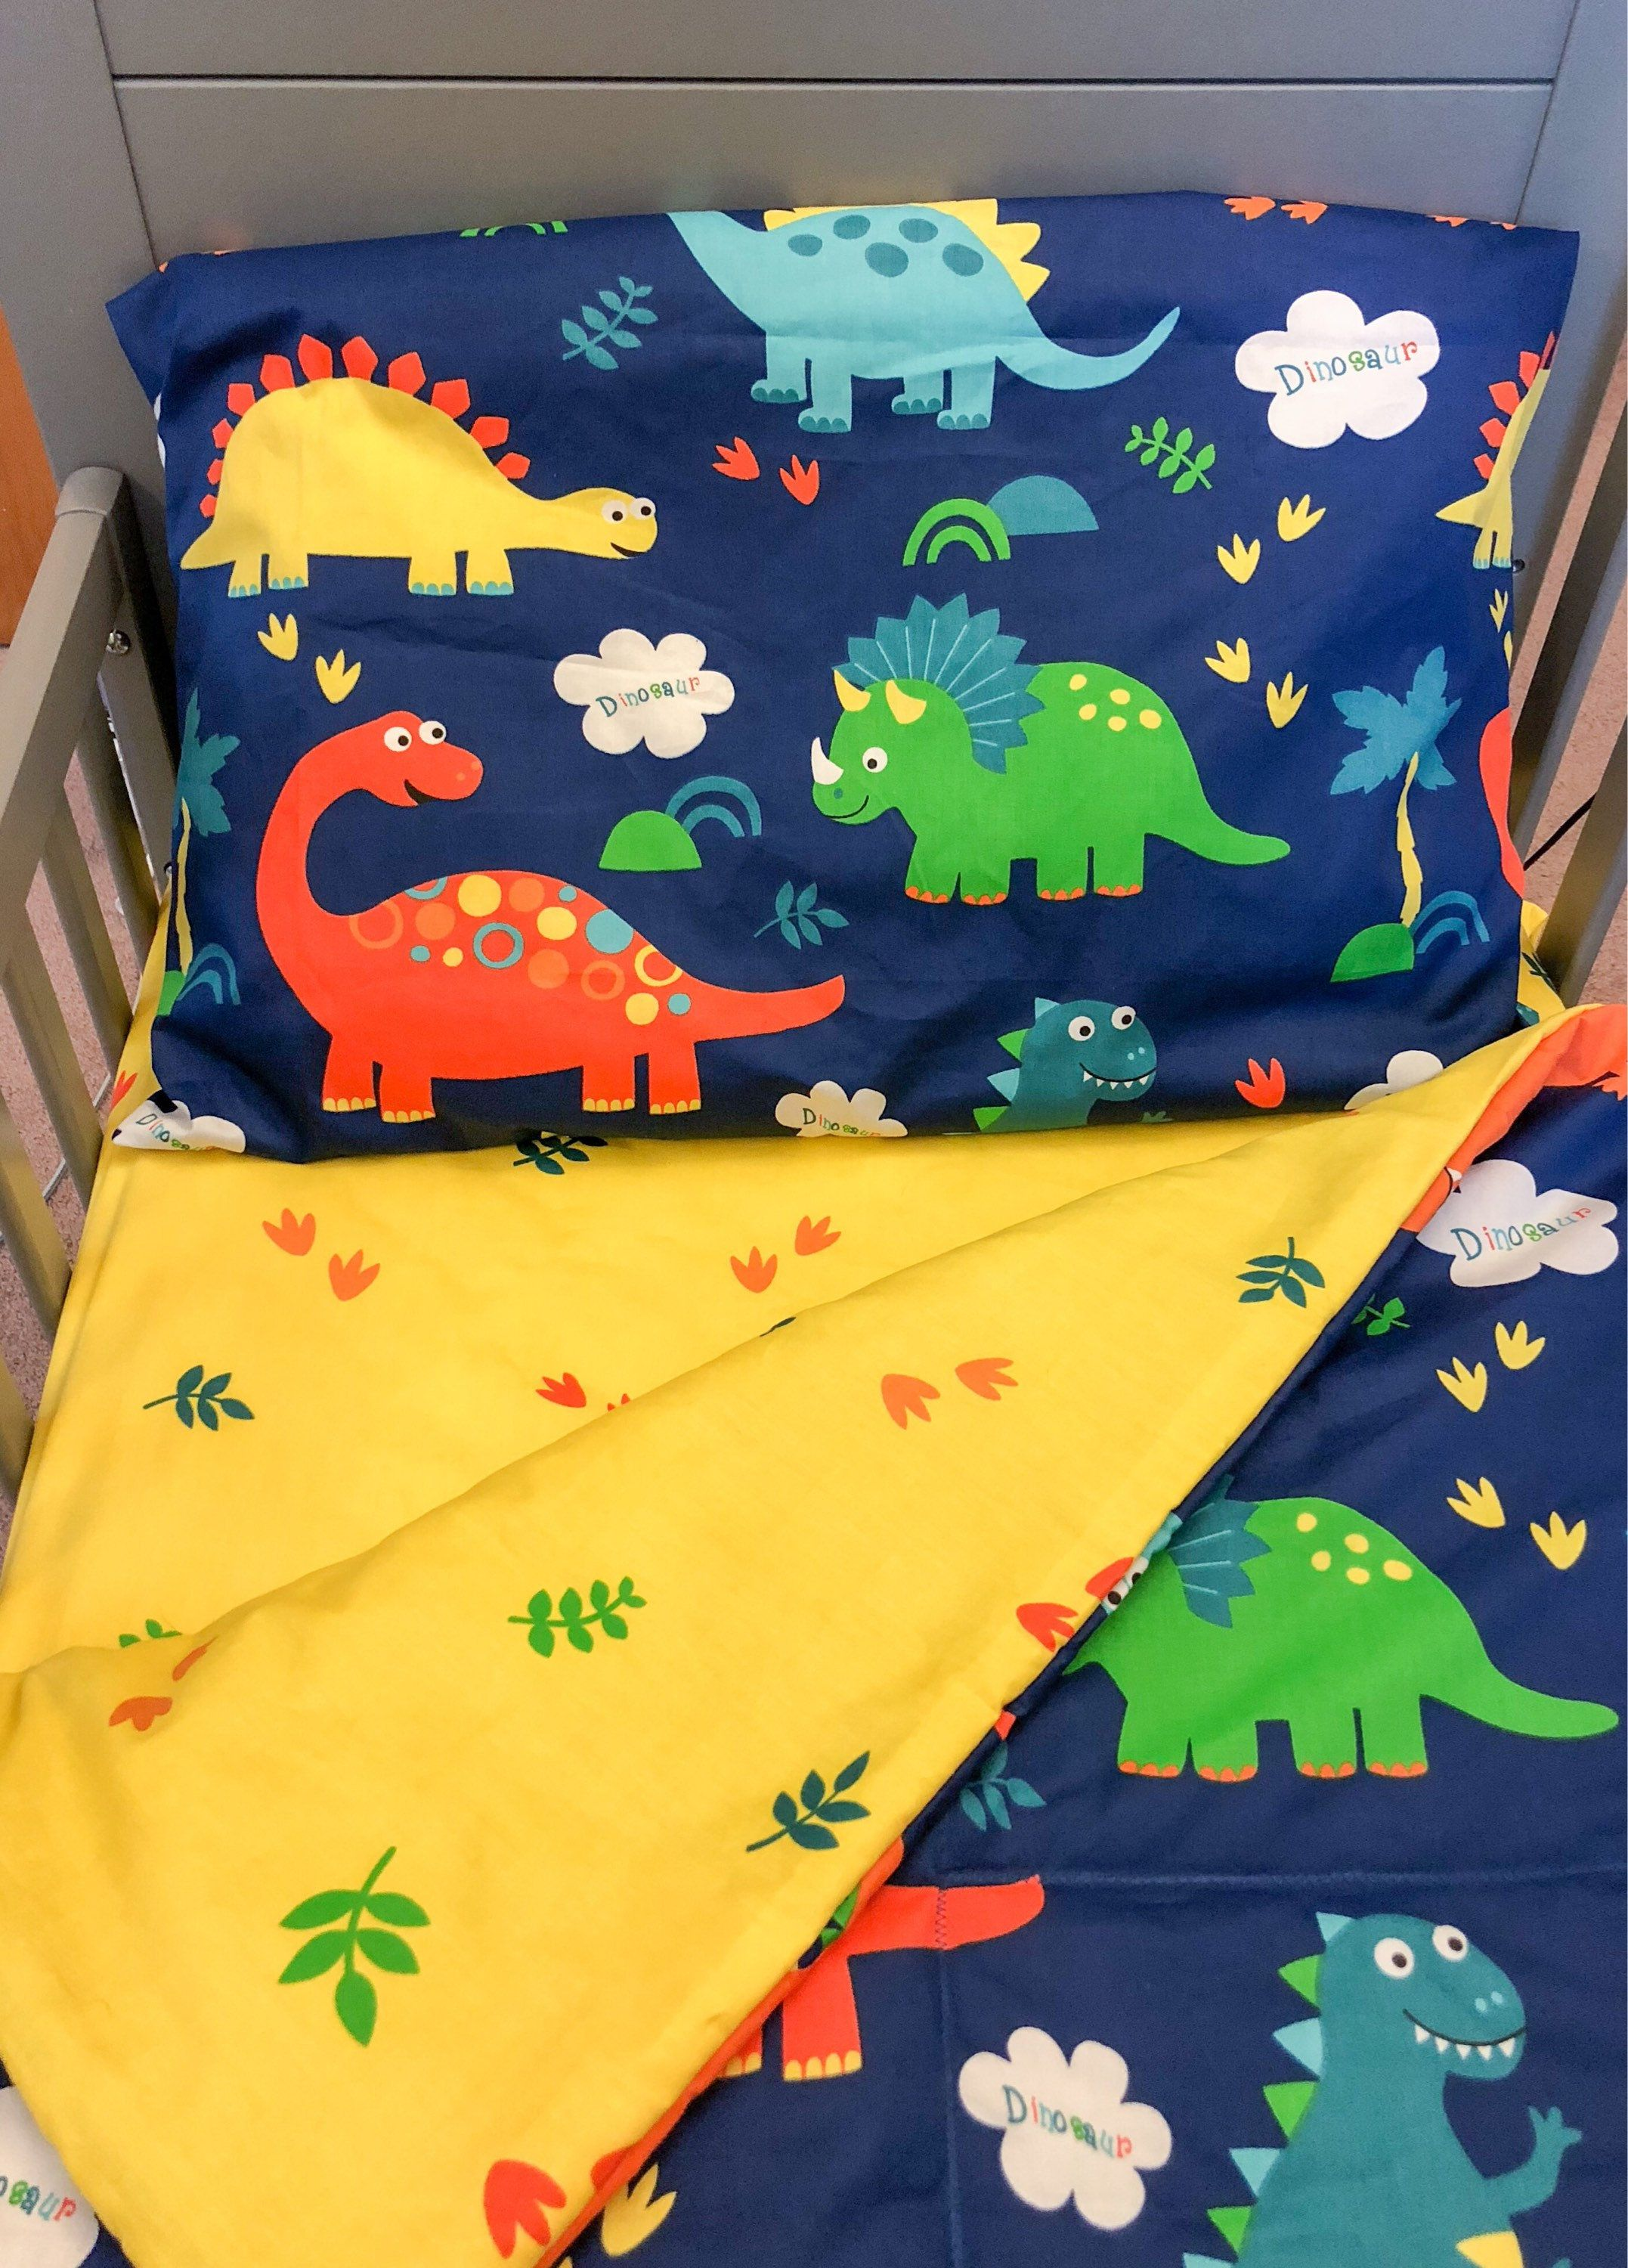 Dinosaurs Crib And Ikea Bedding For Kids Crib Bumpers Etsy Crib Bedding Boy Toddler Bed Boy Dinosaur Crib Bedding